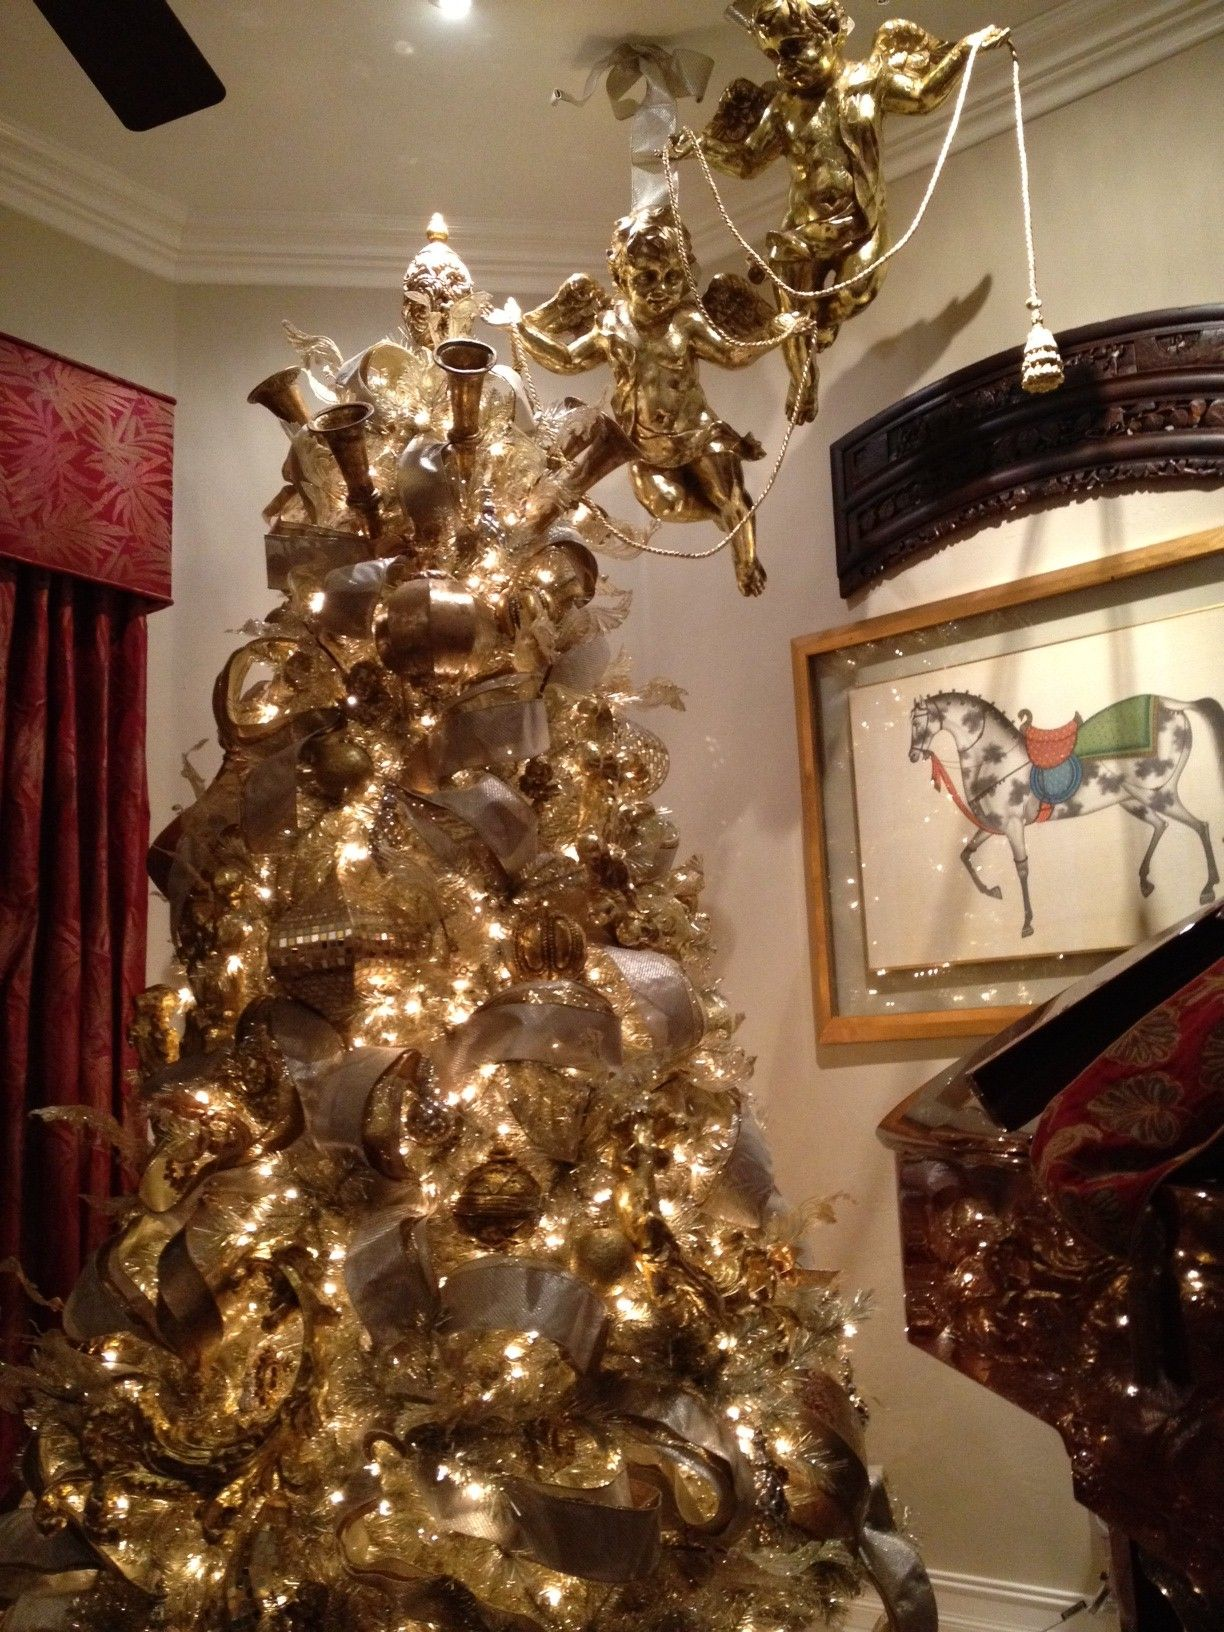 Professional Christmas Decorating Ideas.Gold Christmas Tree Exquisite Professional Christmas Decor